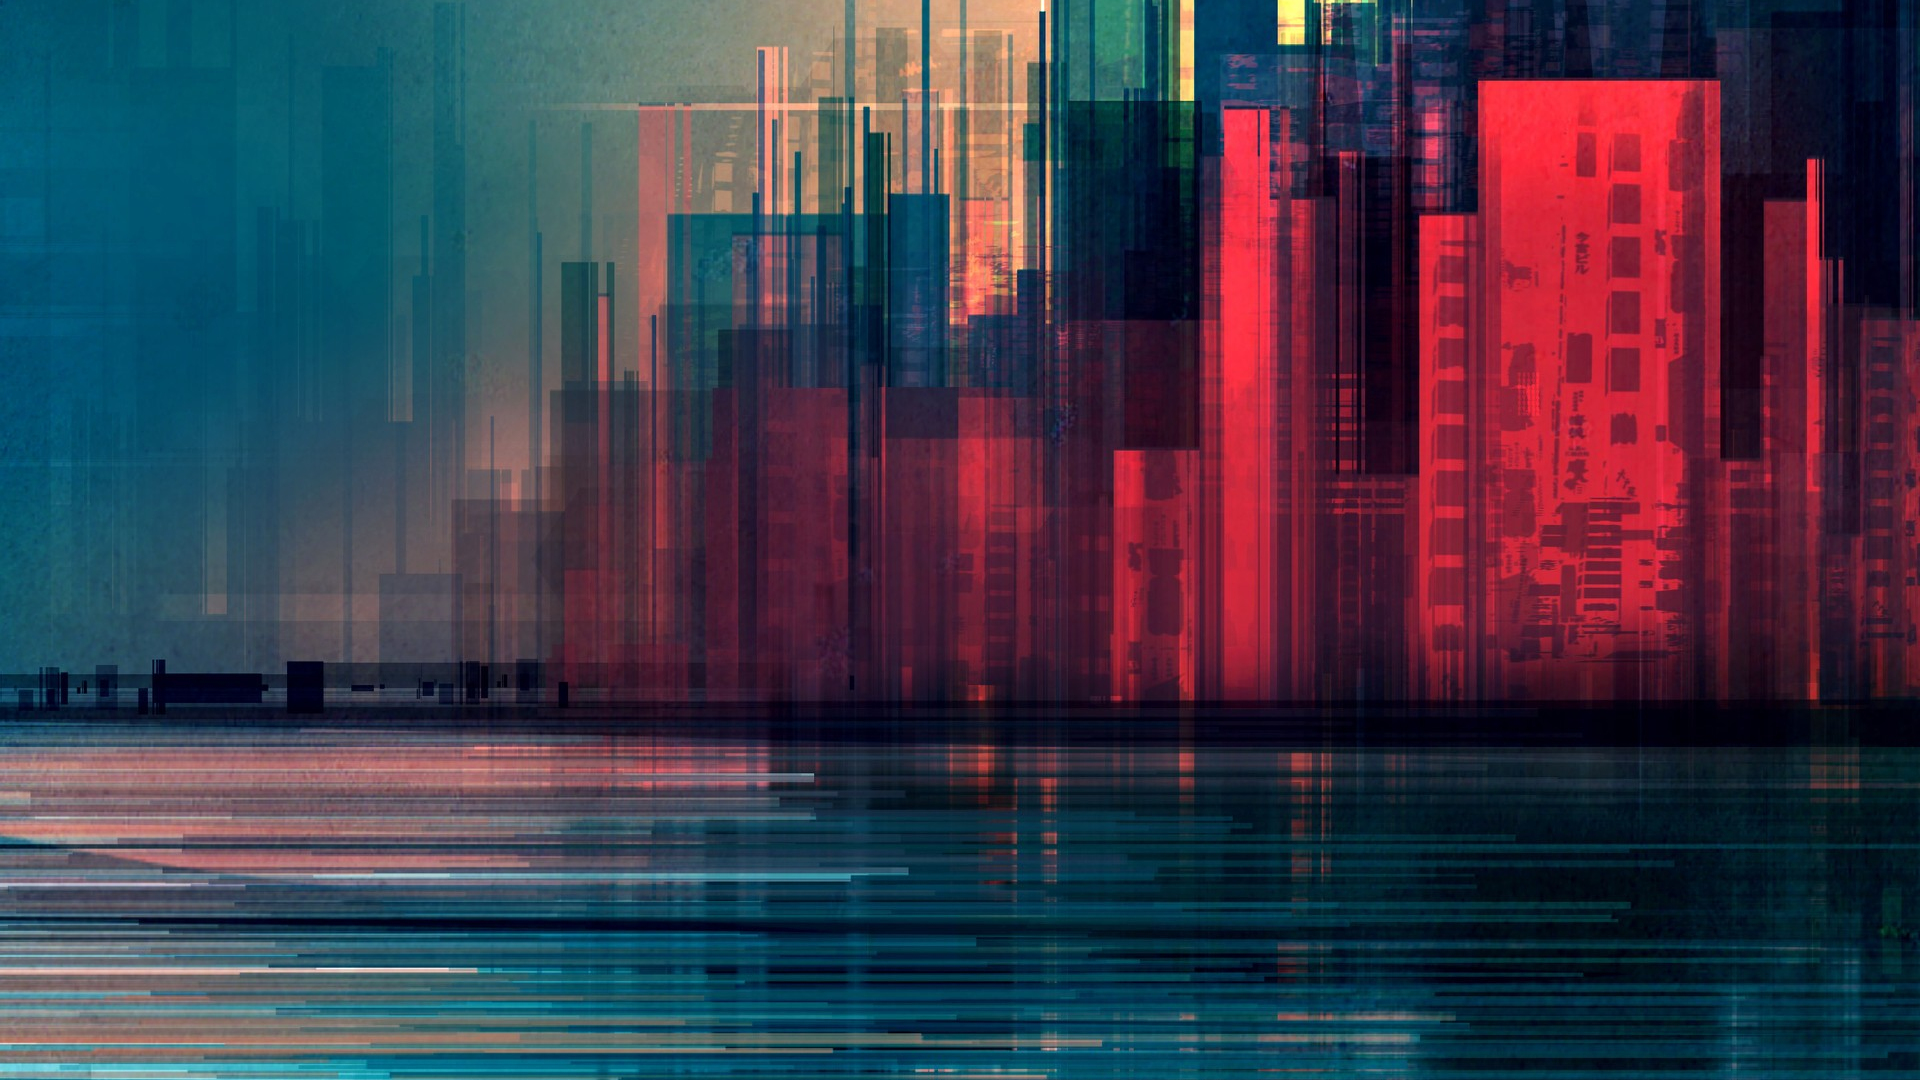 Download 1920x1080 Wallpaper Glitch Art City Abstract